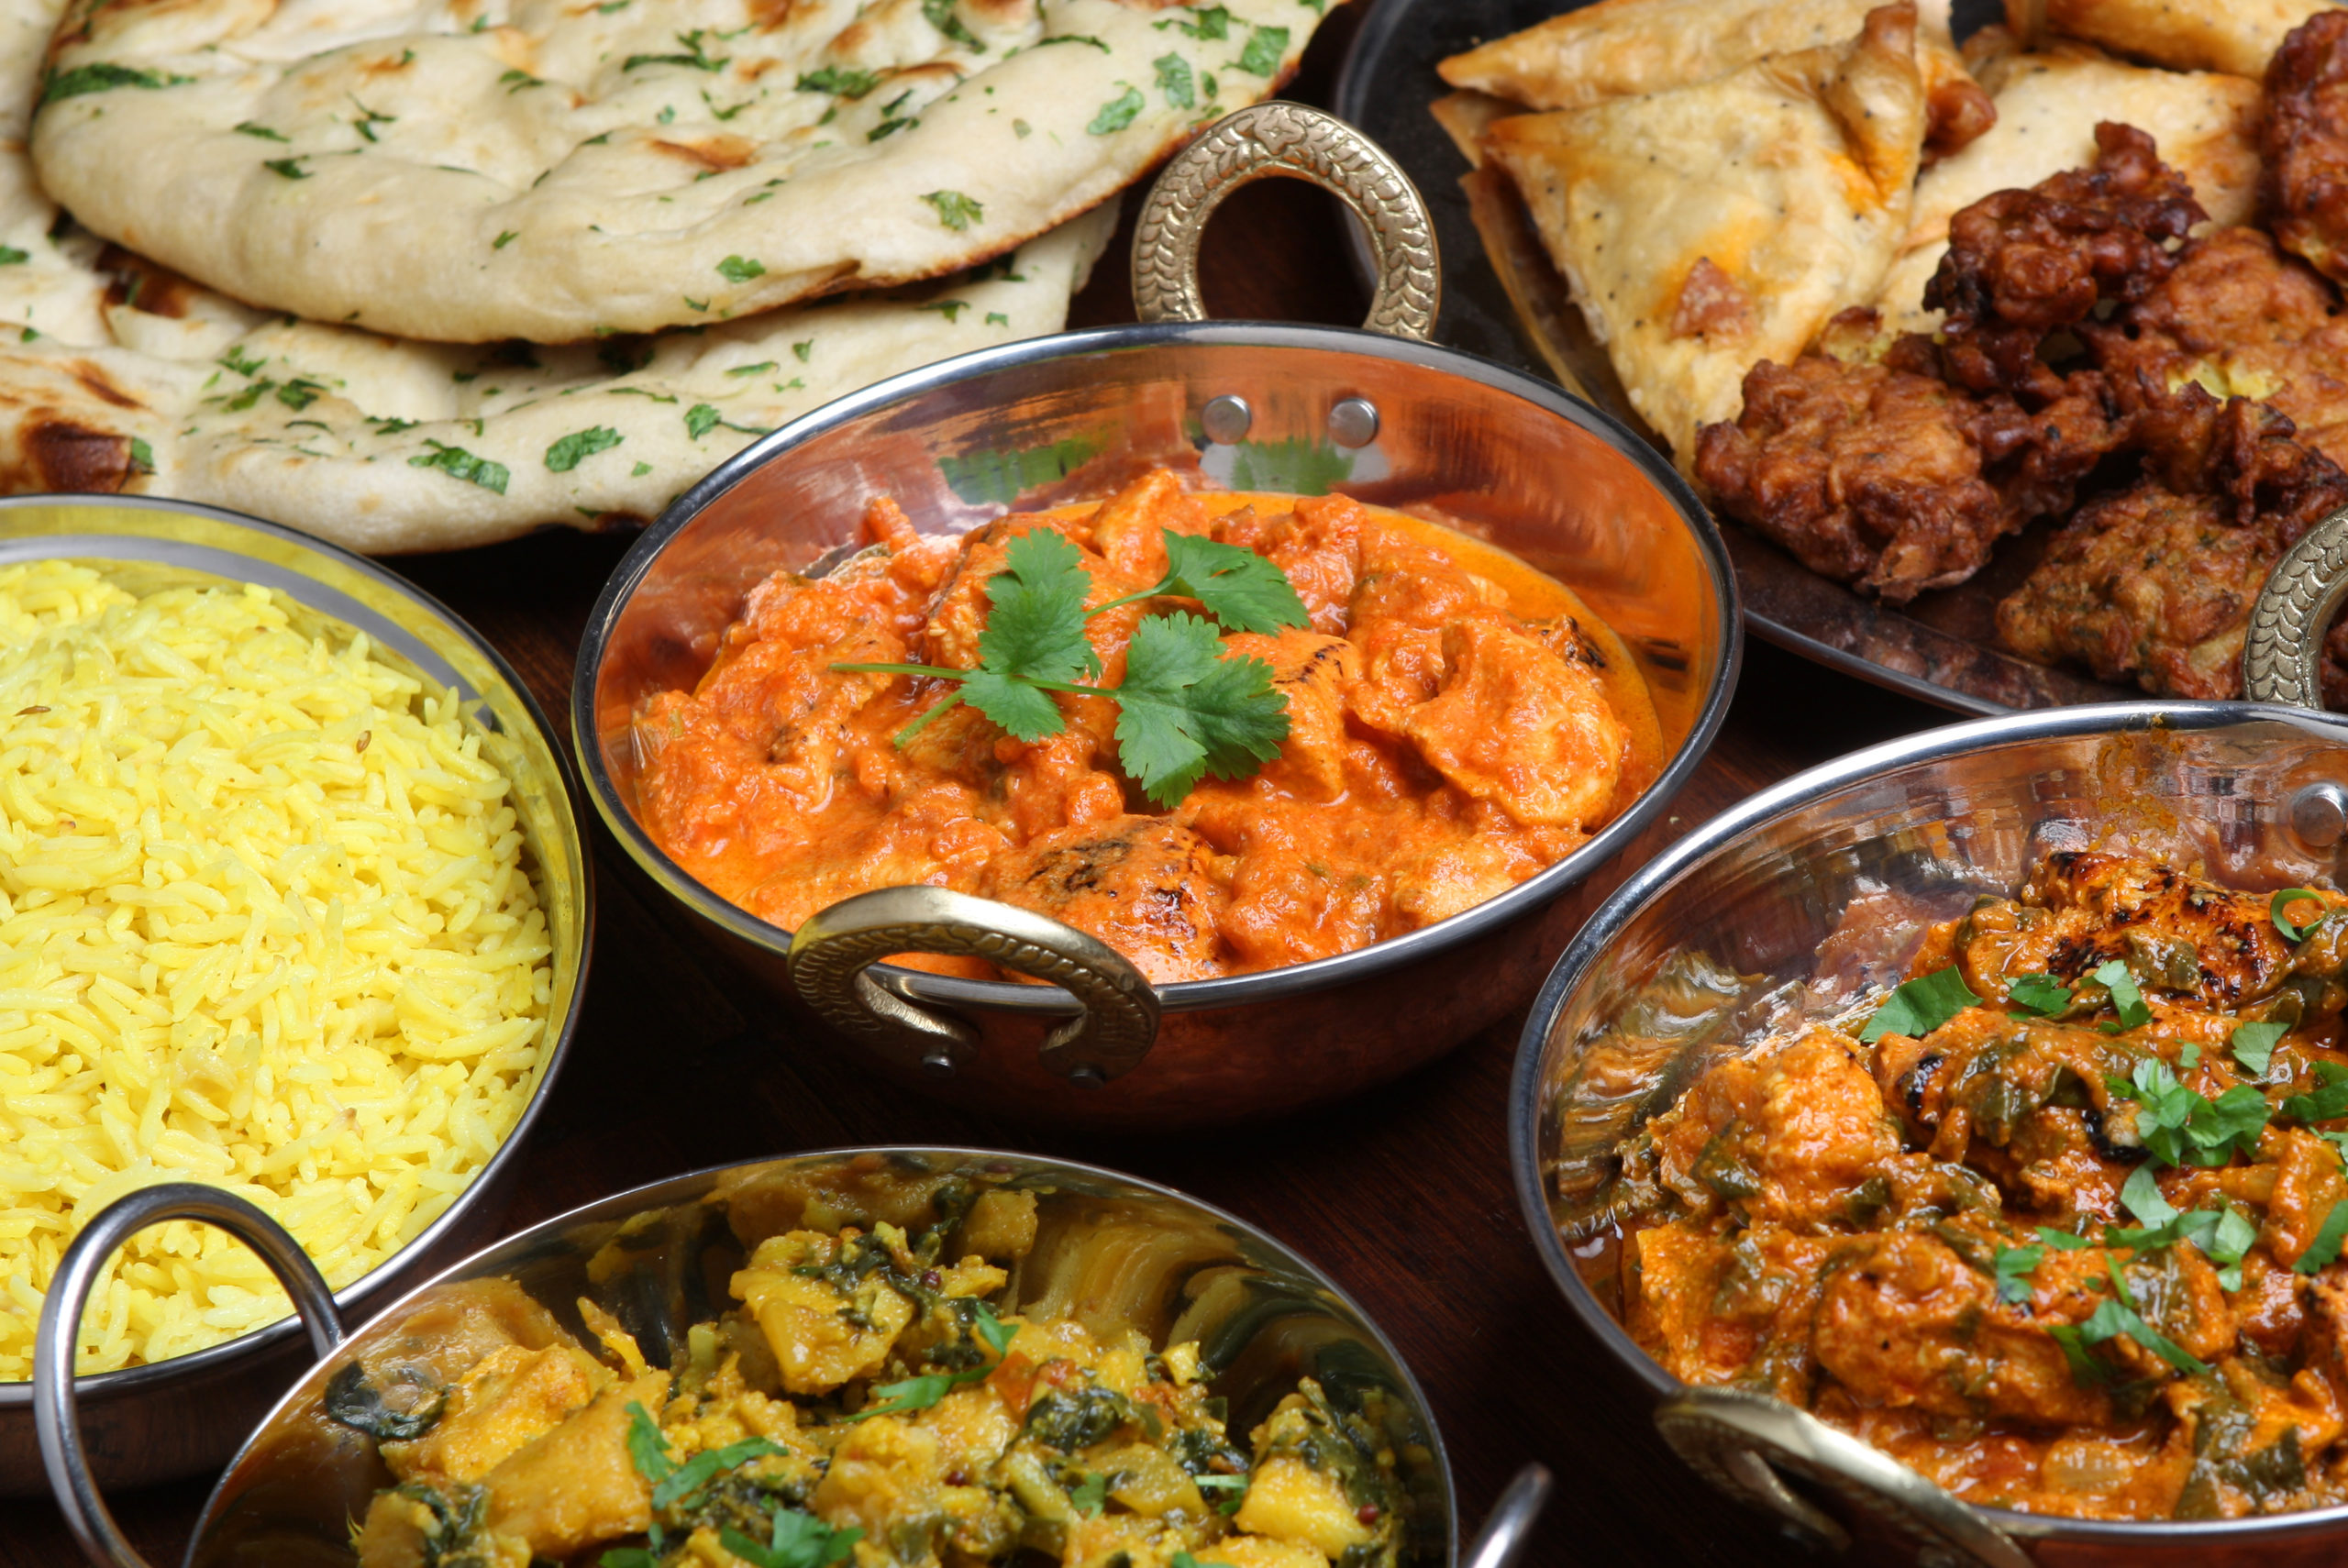 A selection of food from Indian restaurants near Kingstowne, VA